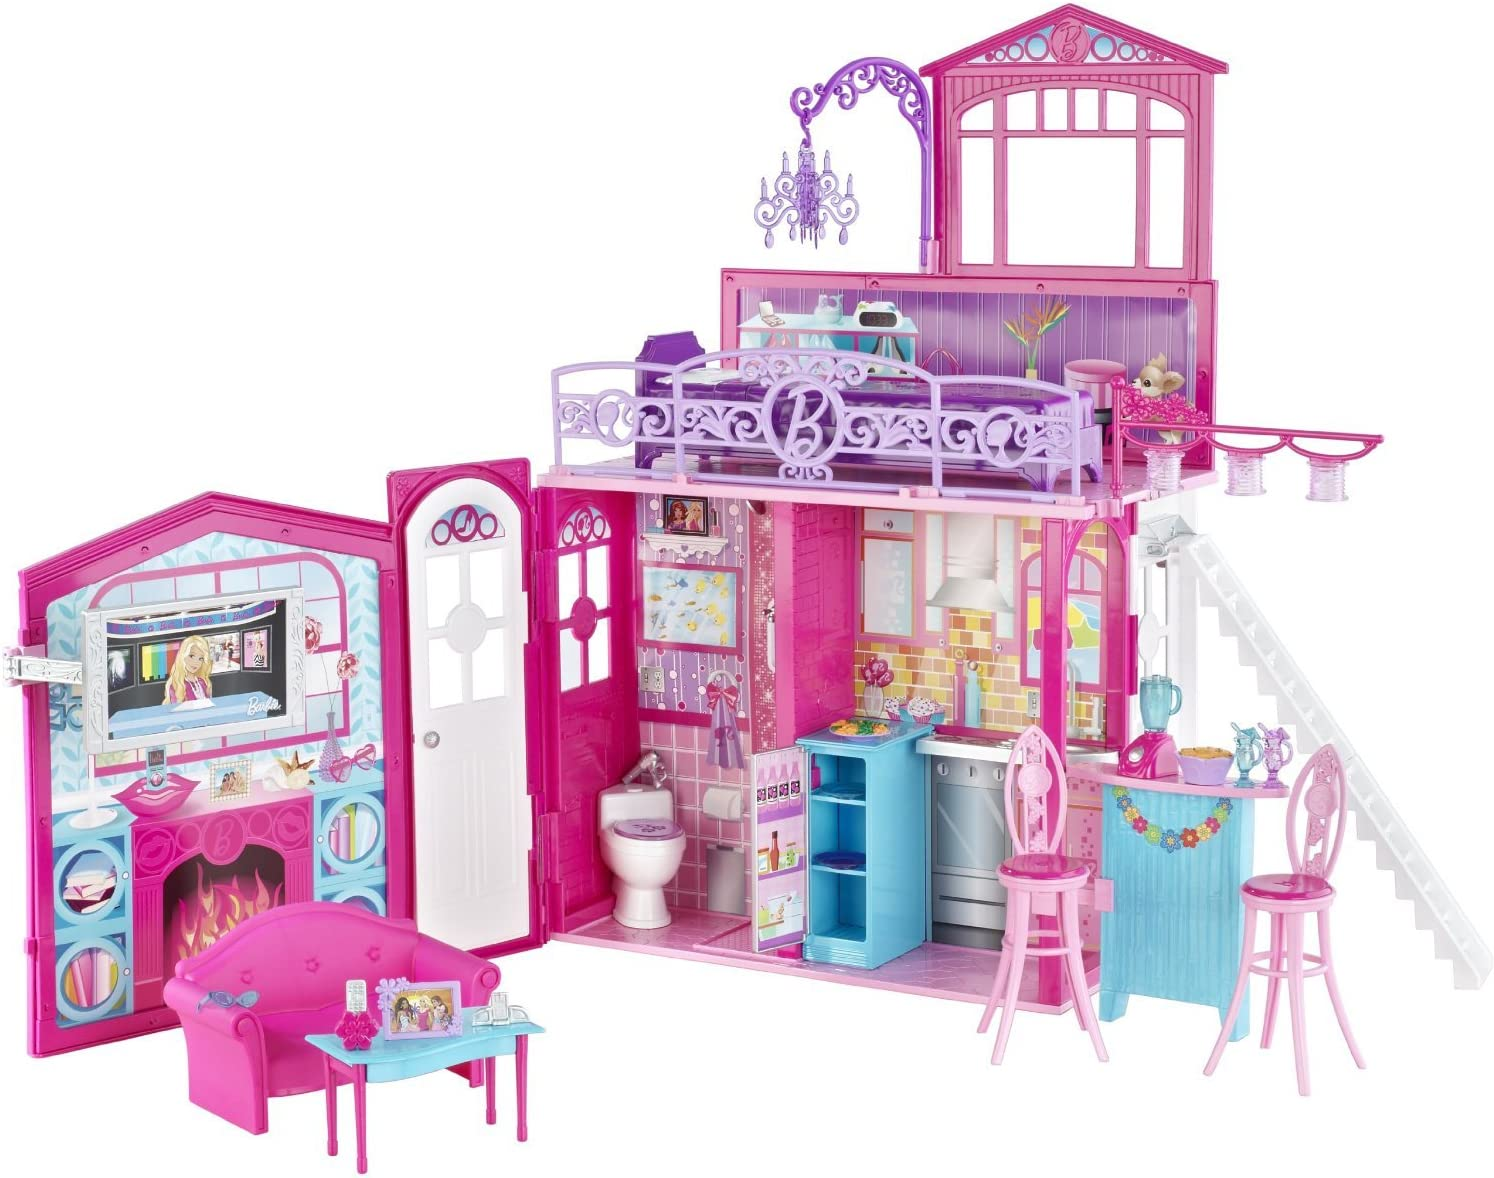 Max 72% OFF Barbie Brand Cheap Sale Venue Glam House Vacation